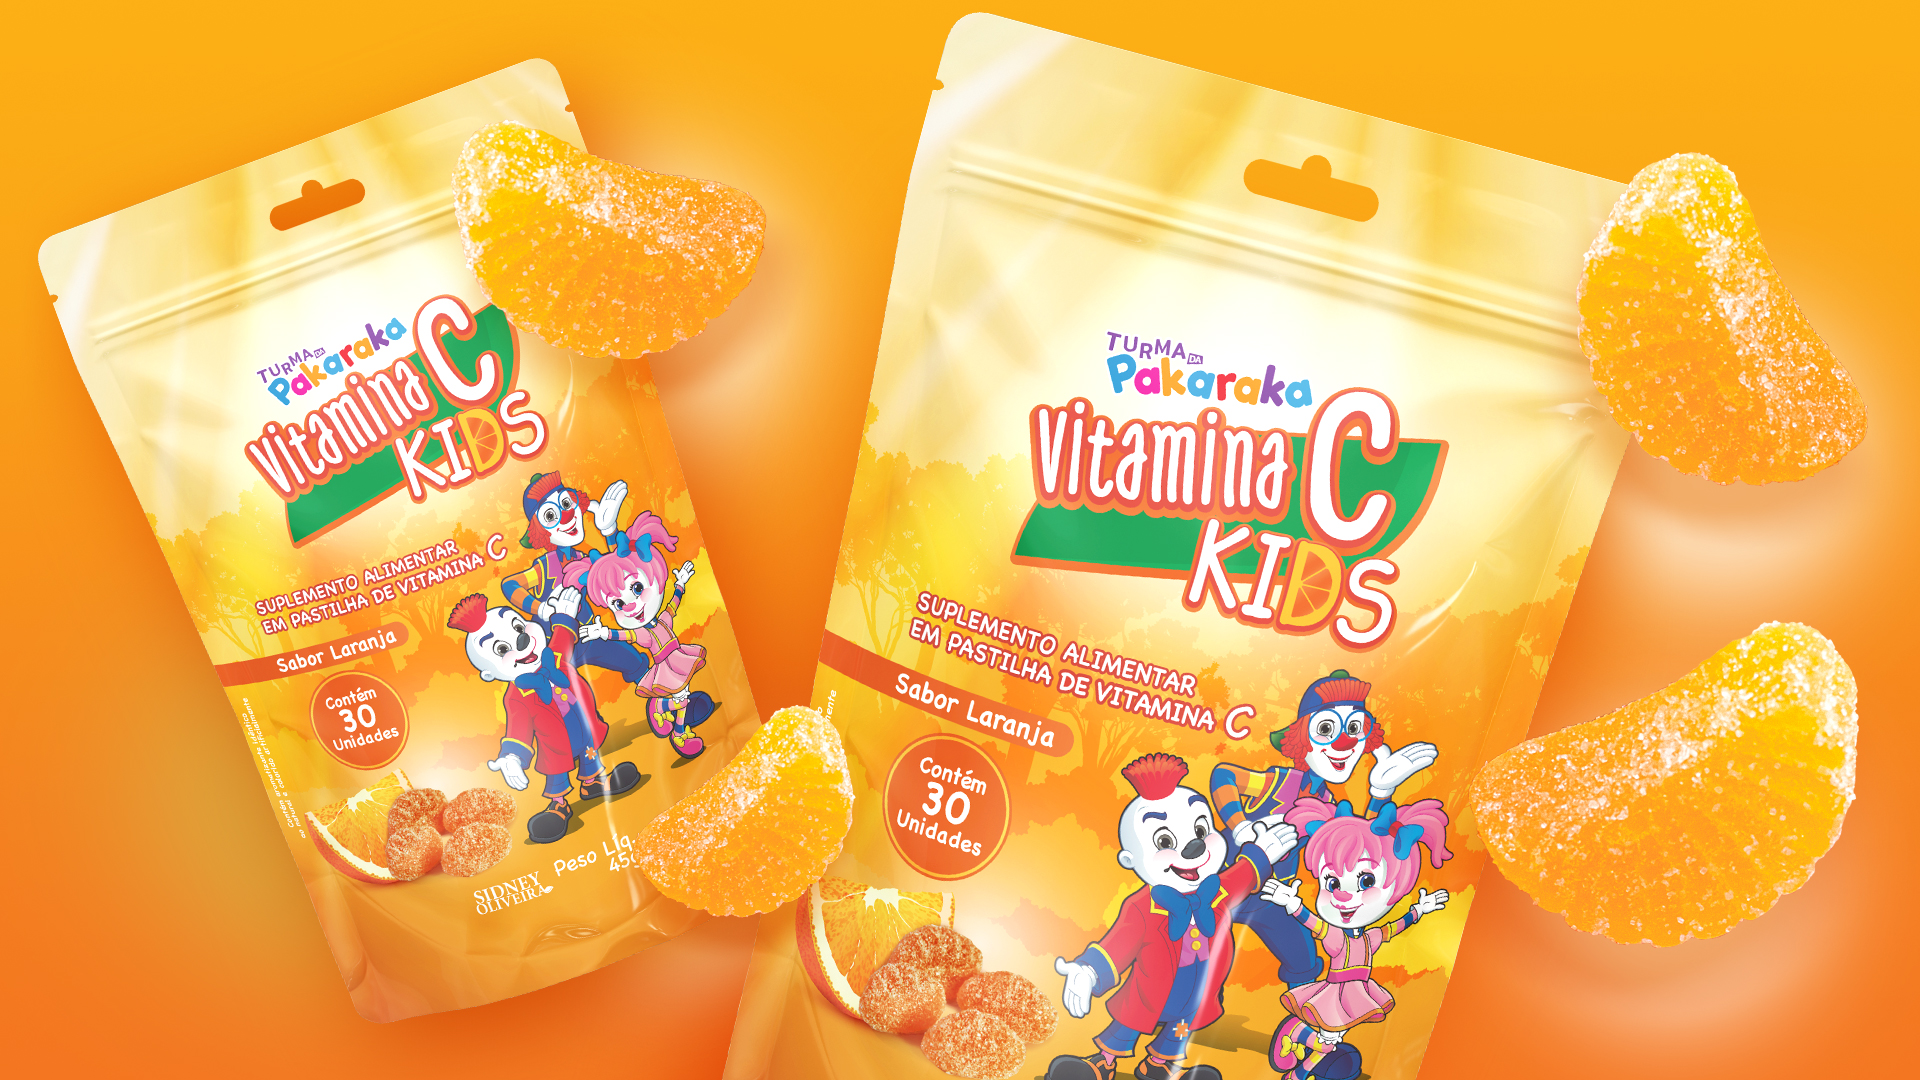 Ultrafarma Vitamina C Kids